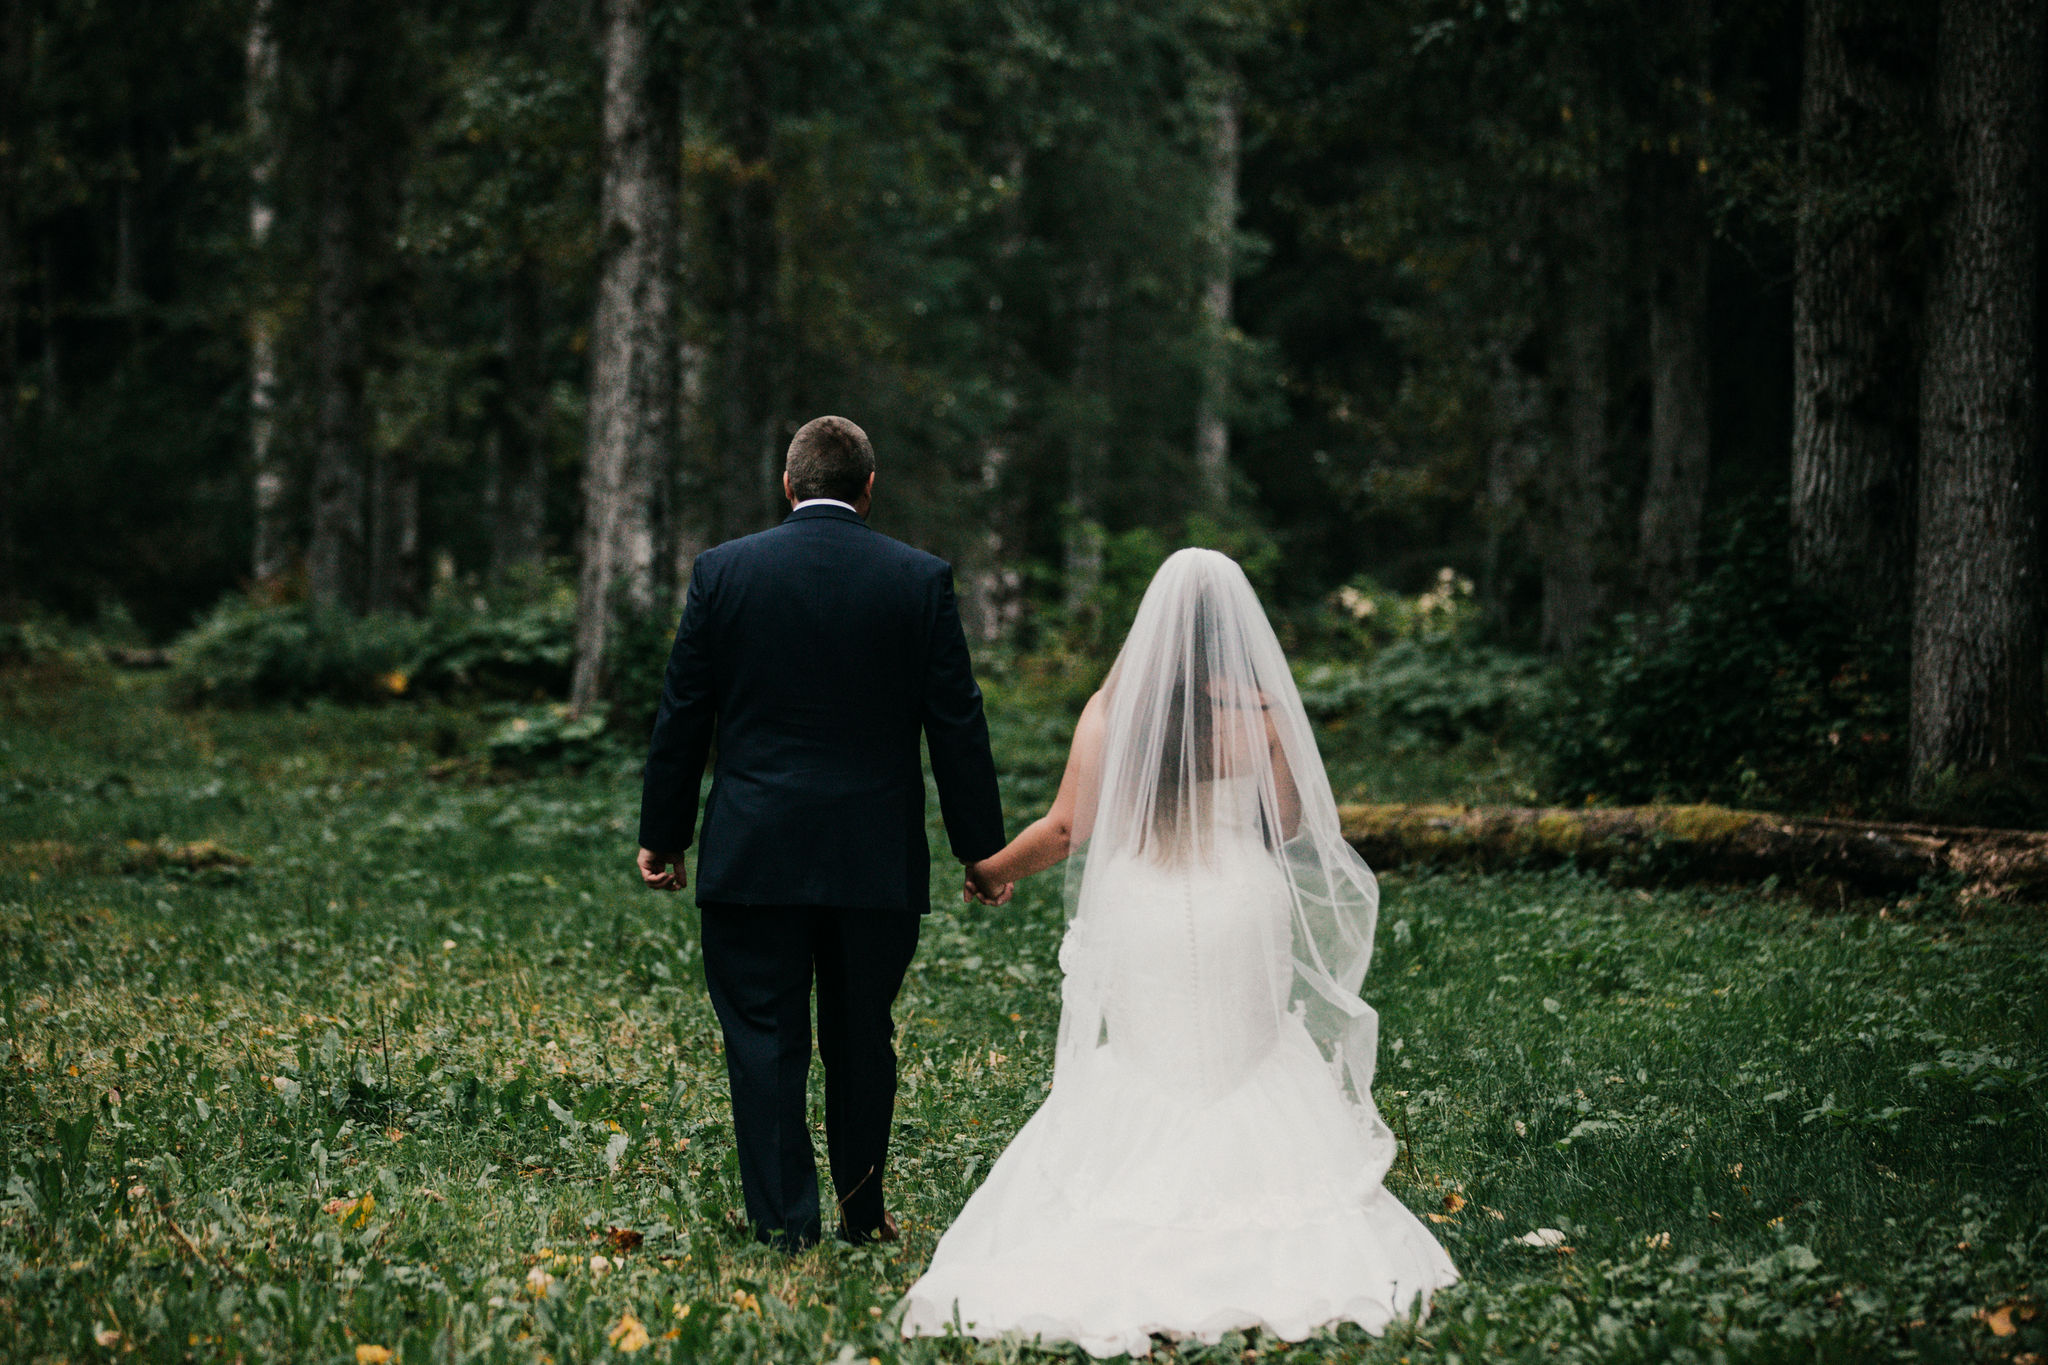 Alaska Elopement - Elope to Alaska - Alaska Destination Wedding